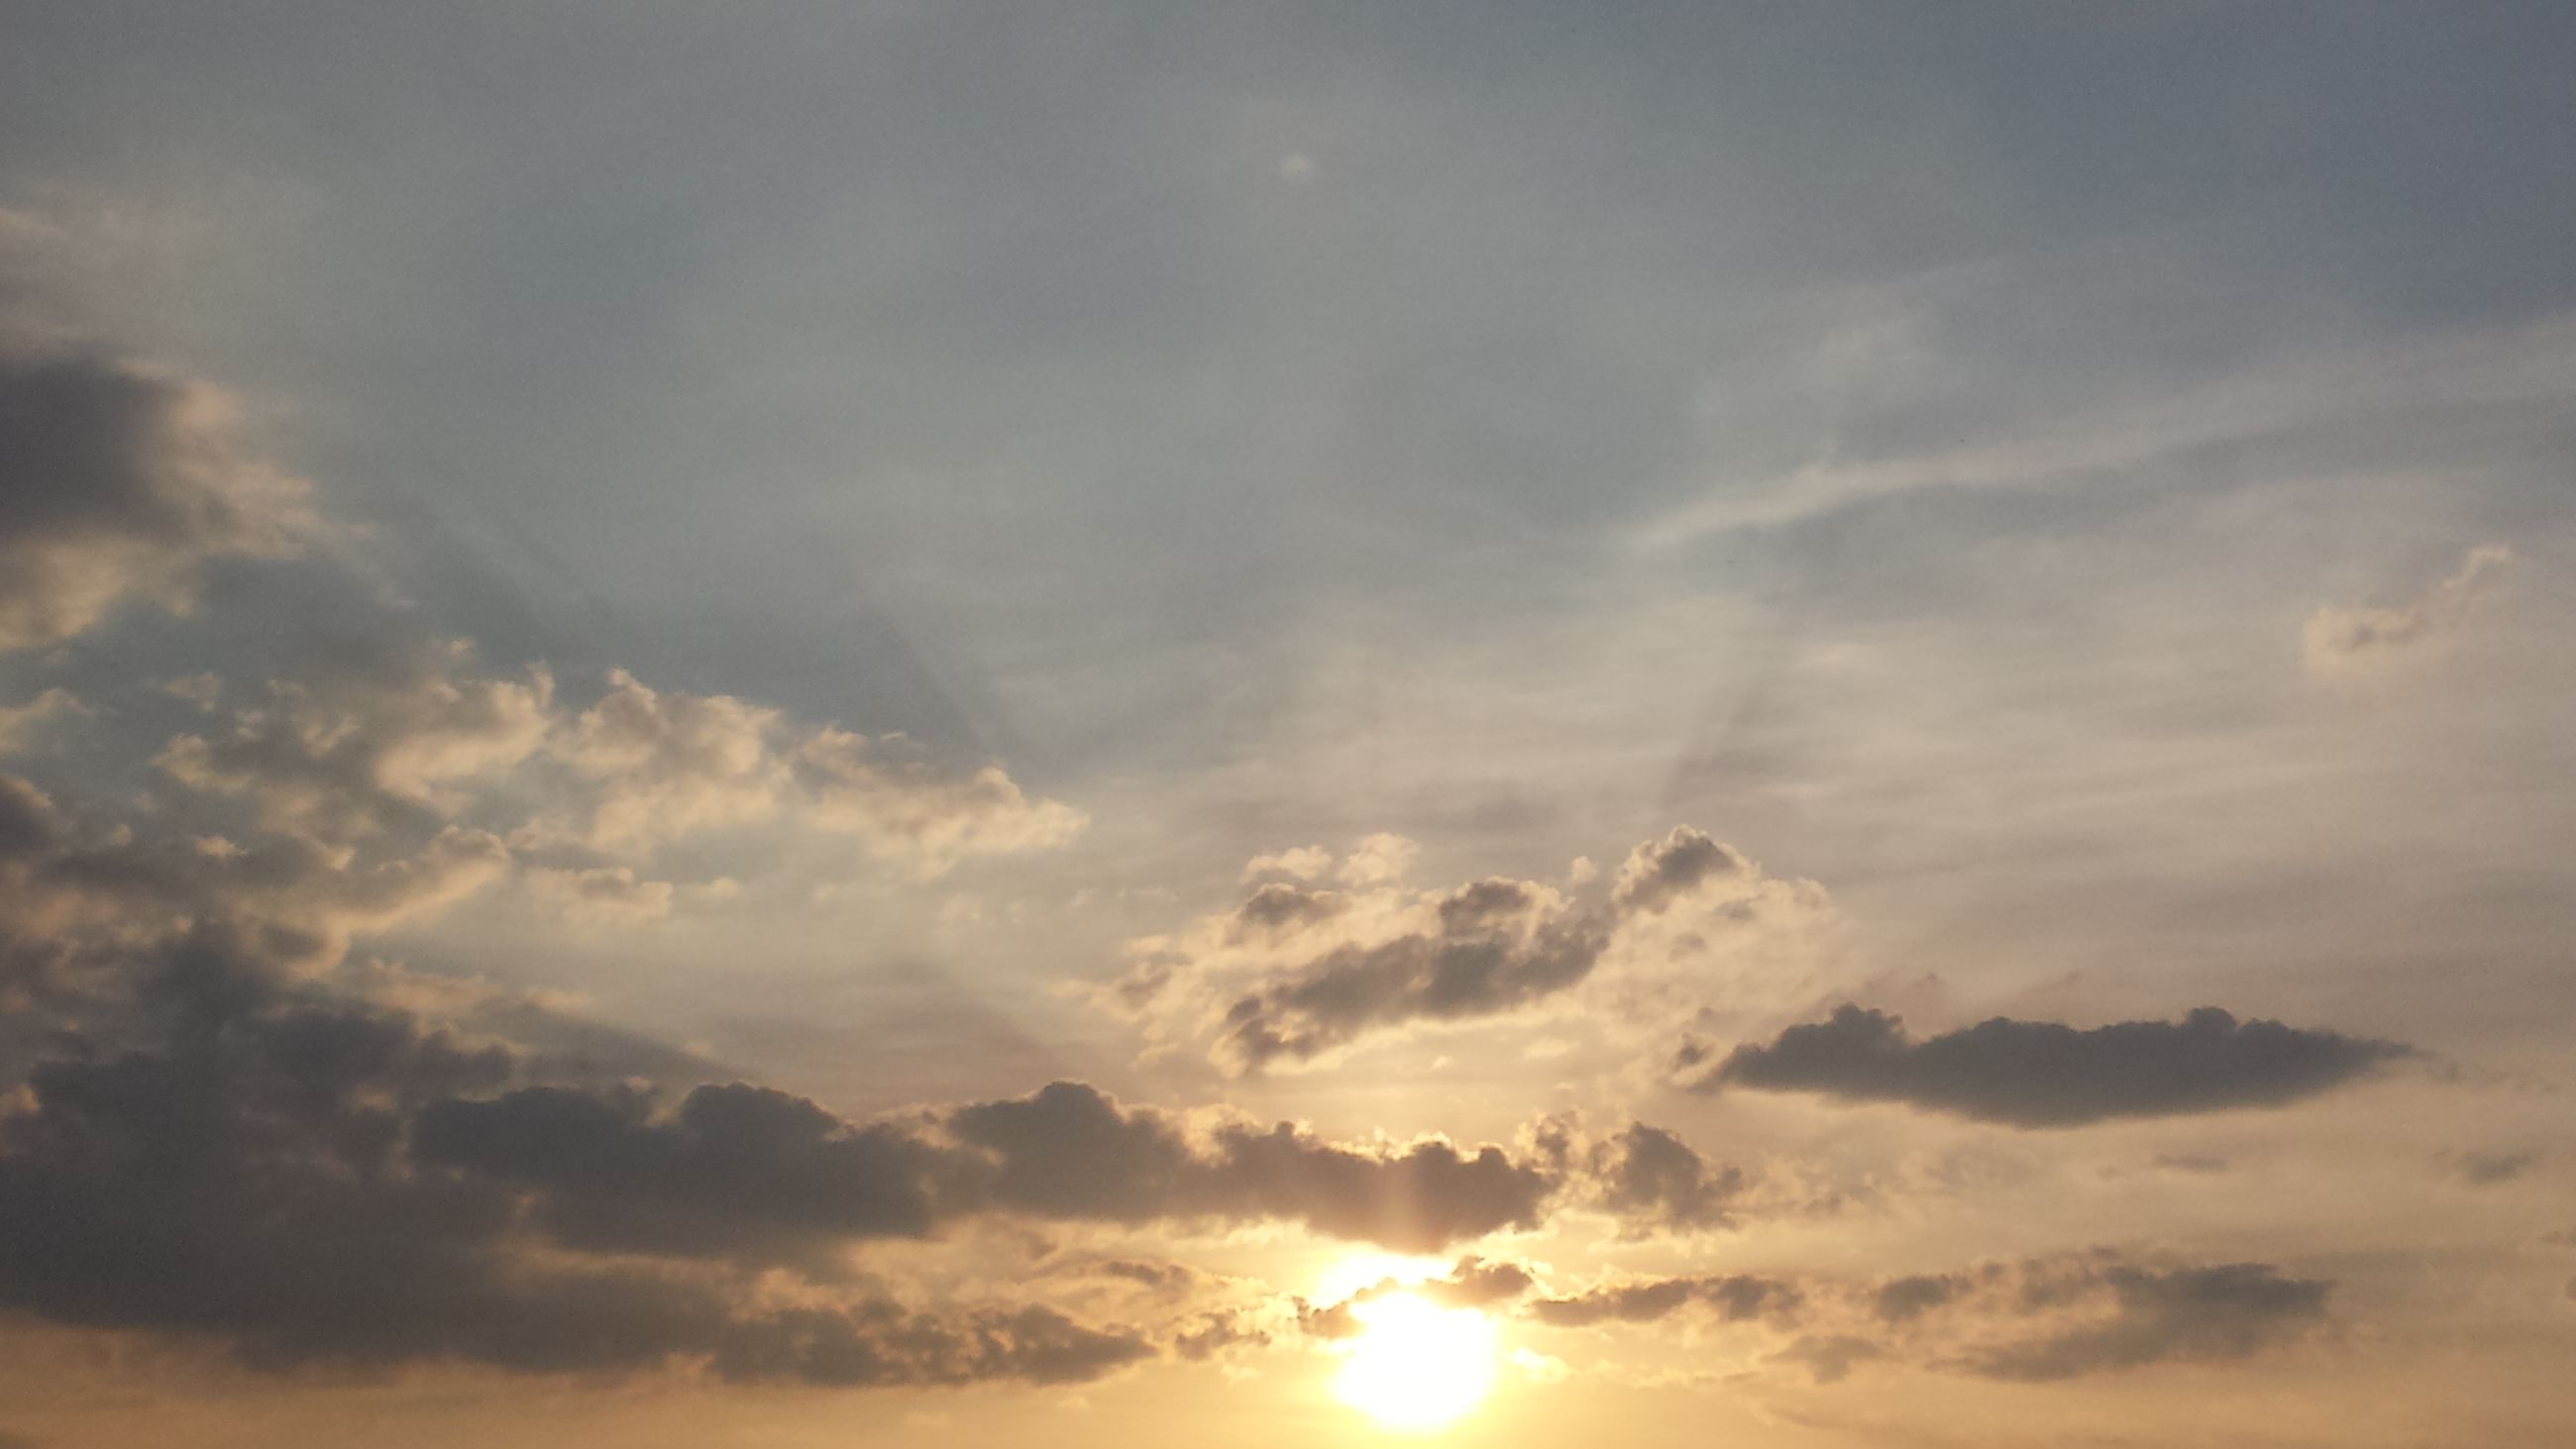 sky, sunset, cloud - sky, beauty in nature, idyllic, nature, scenics, tranquility, awe, no people, tranquil scene, sun, outdoors, heaven, backgrounds, day